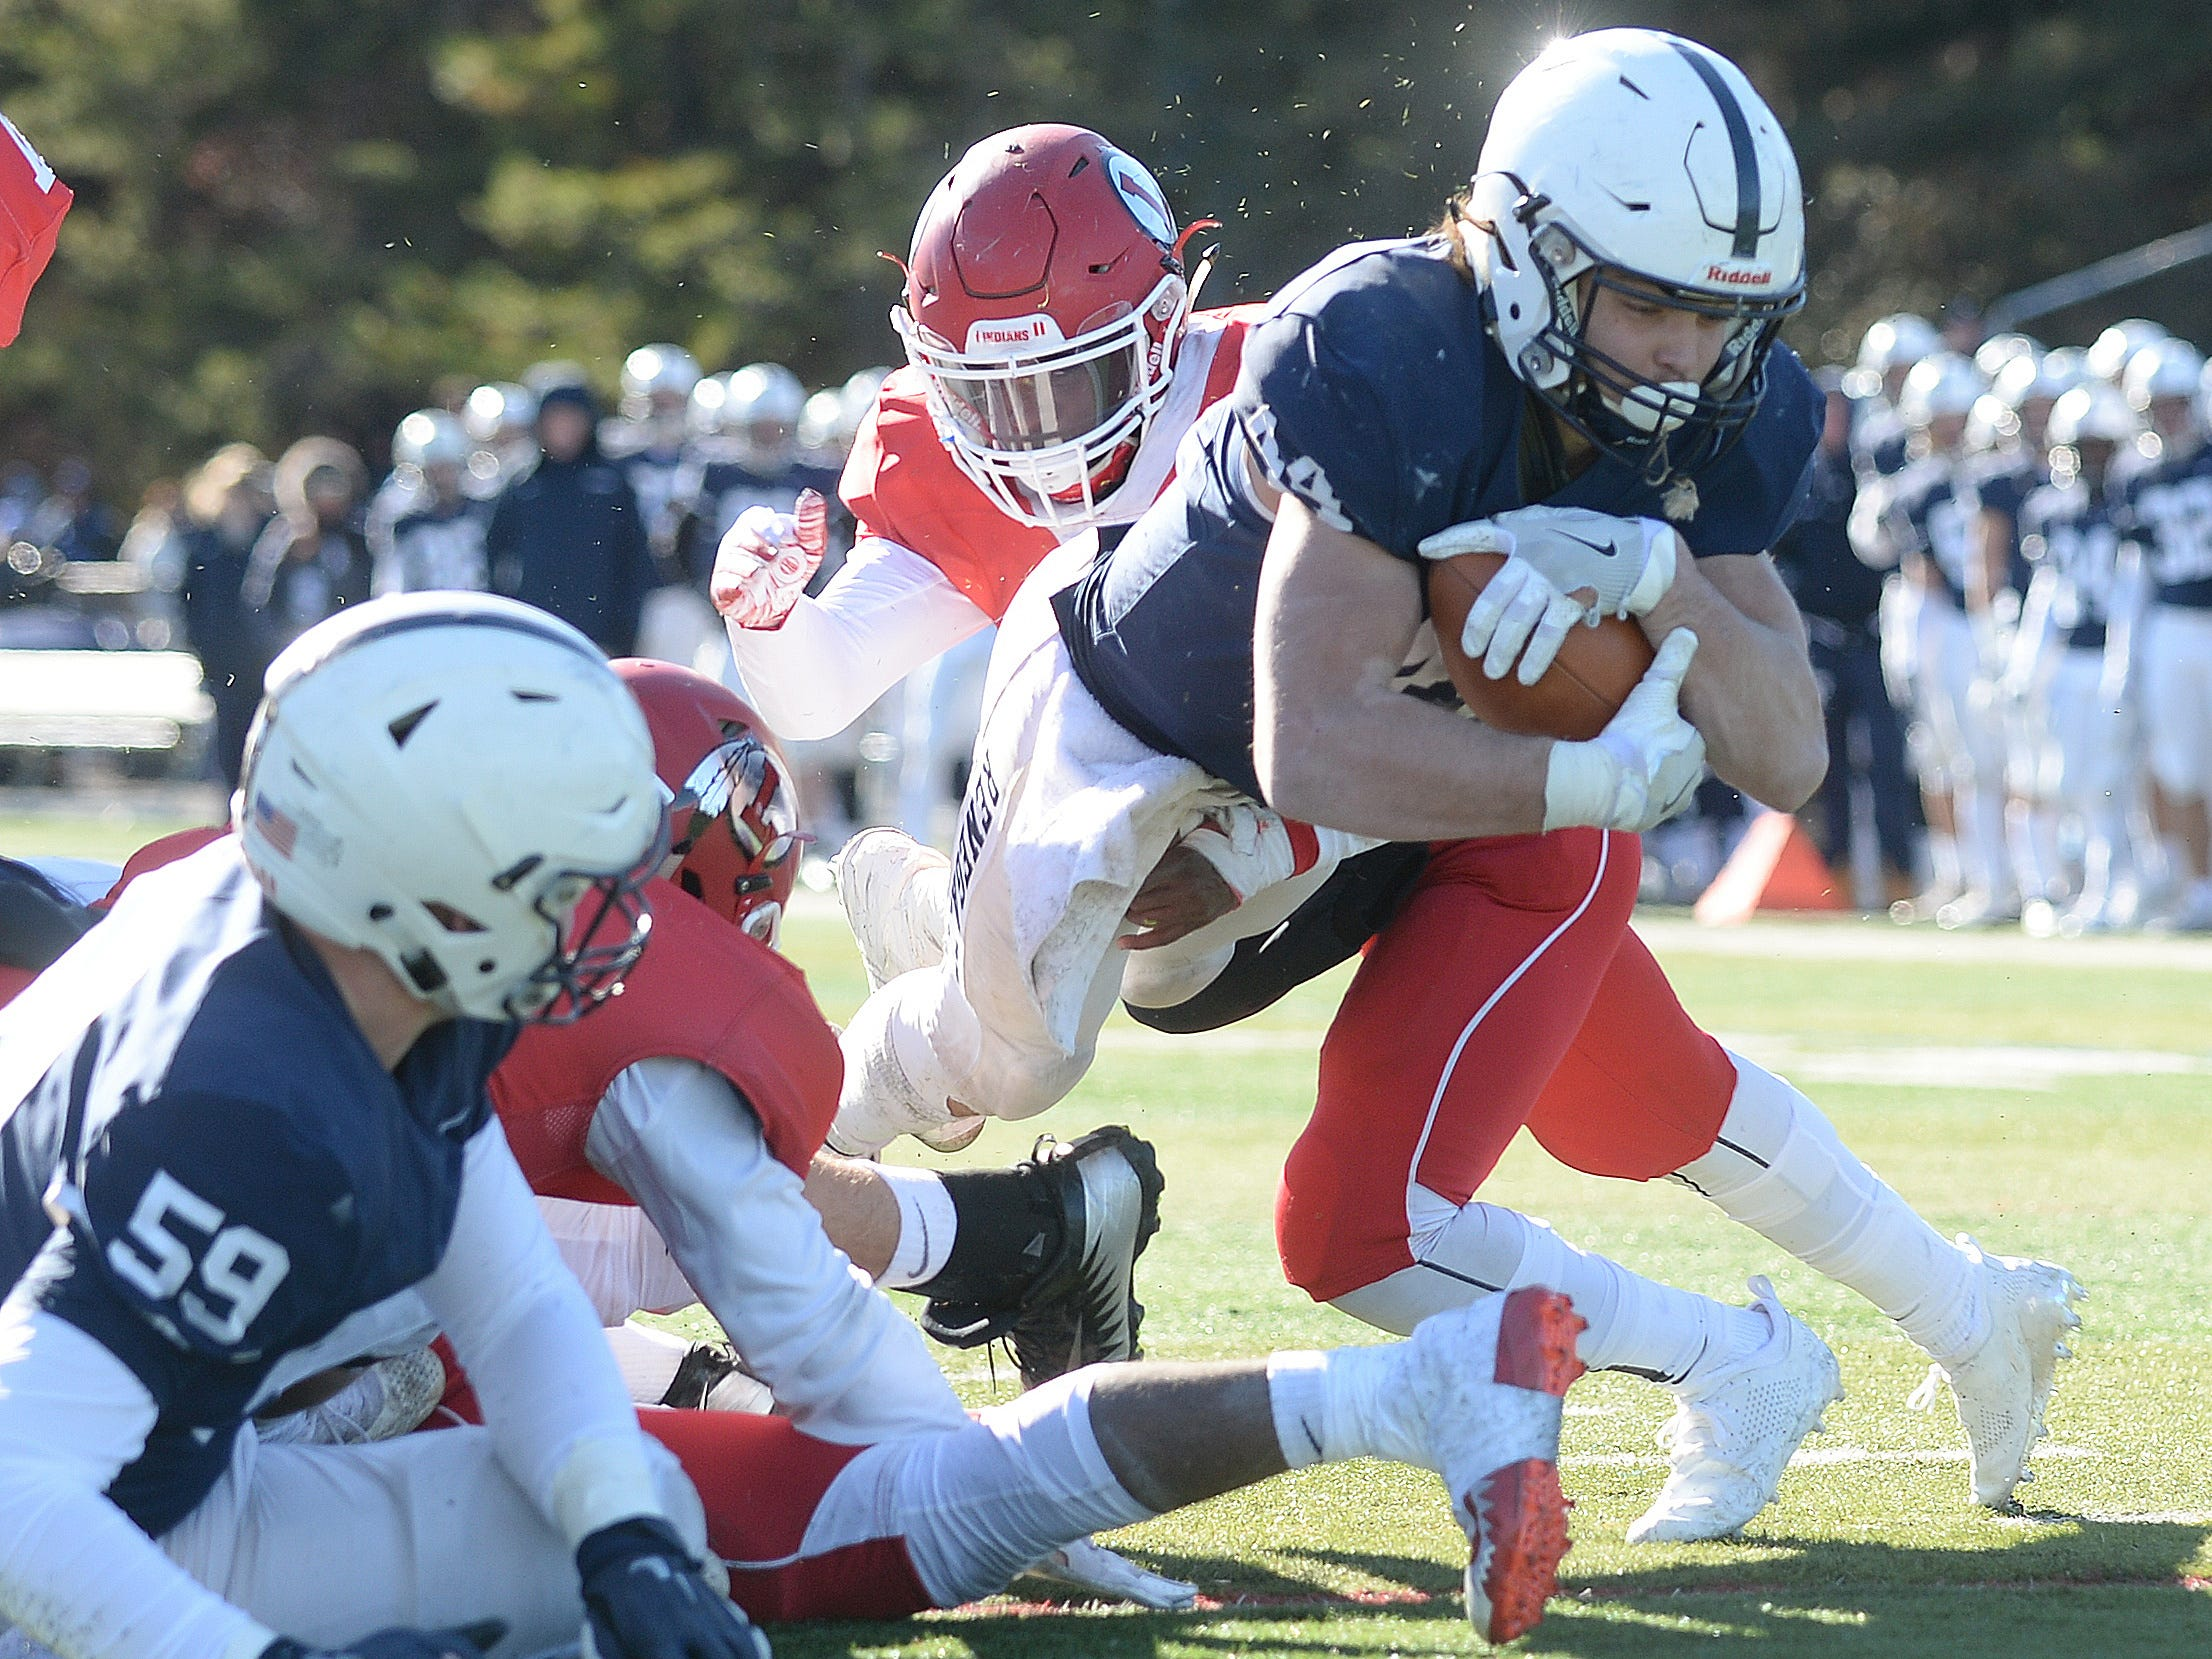 Shawnee's Joey Dalsey carries the ball for a touchdown during the Thanksgiving Day football game against Lenape at Shawnee High School, Thursday, Nov. 22, 2018.